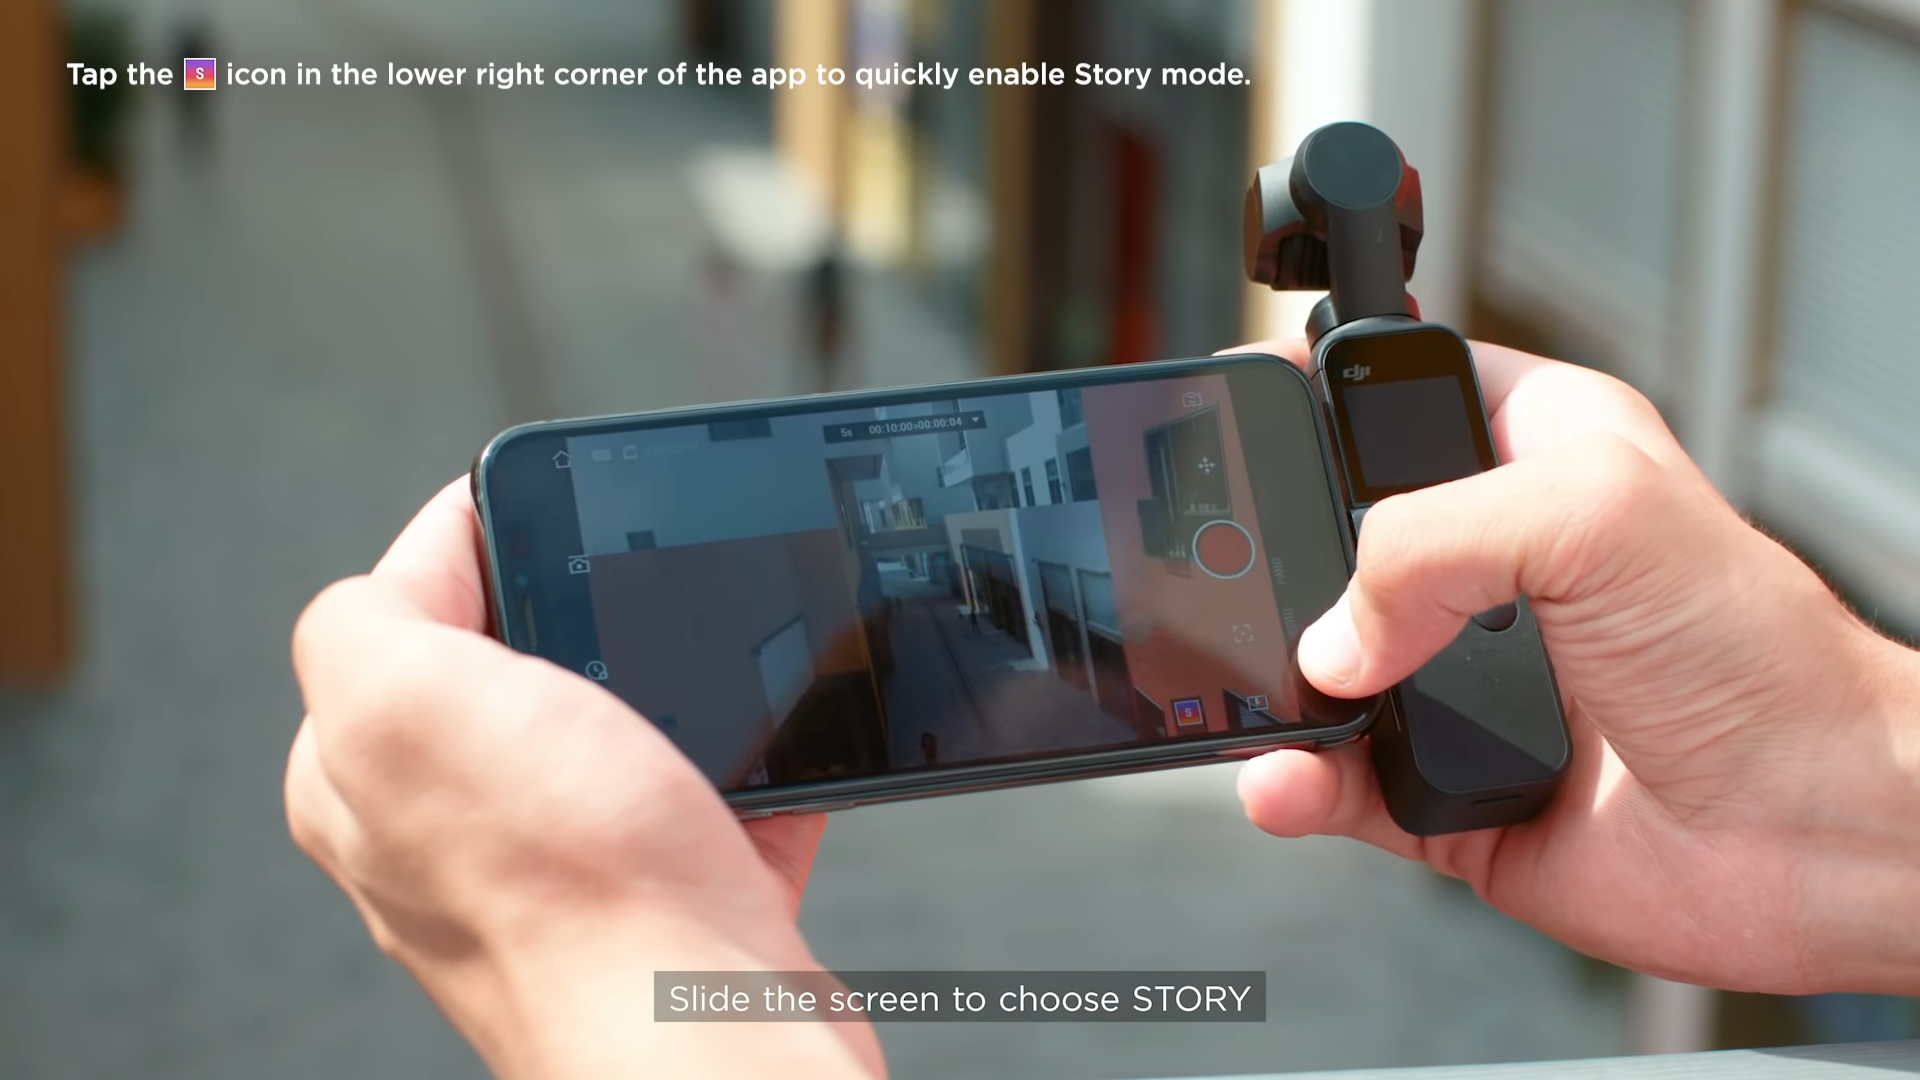 slide to story mode using dji mimo app